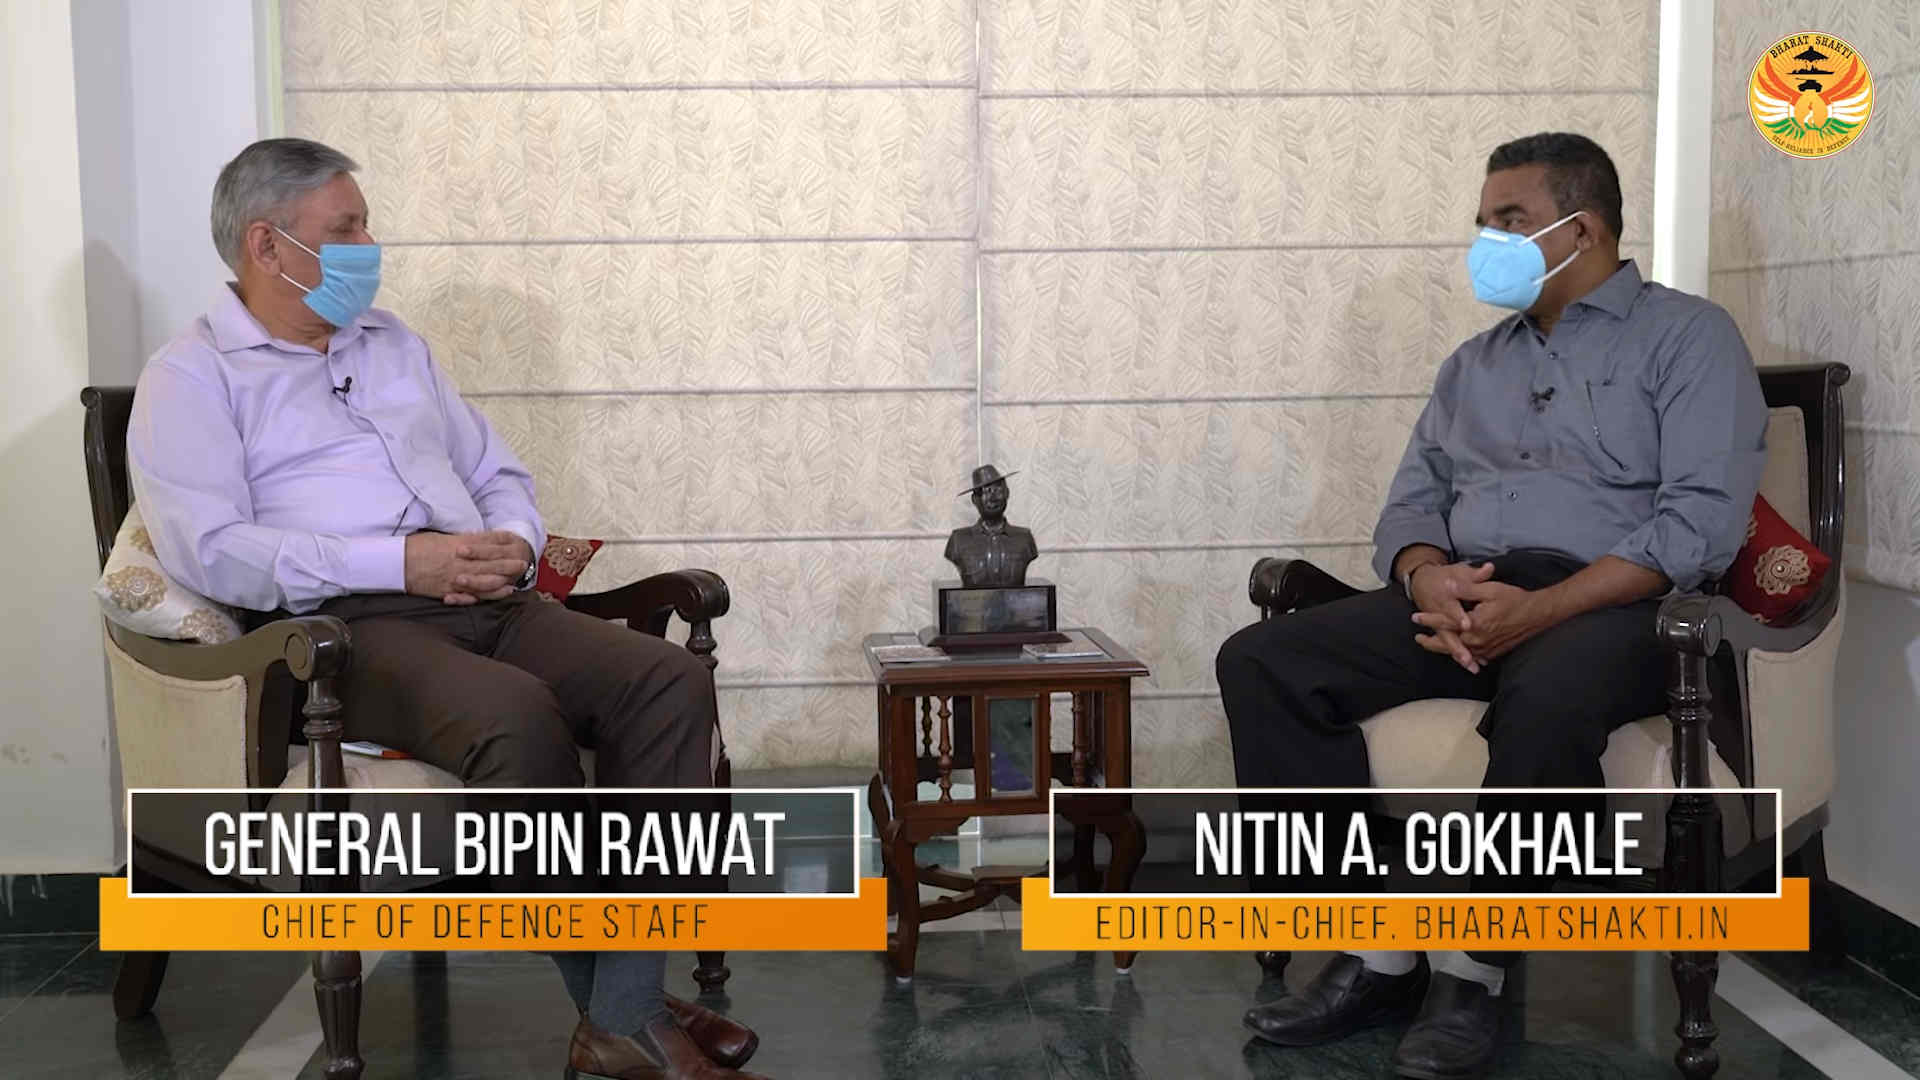 From Leapfrogging to Pole Vaulting: Gen Bipin Rawat Wants to Adopt a New Mantra